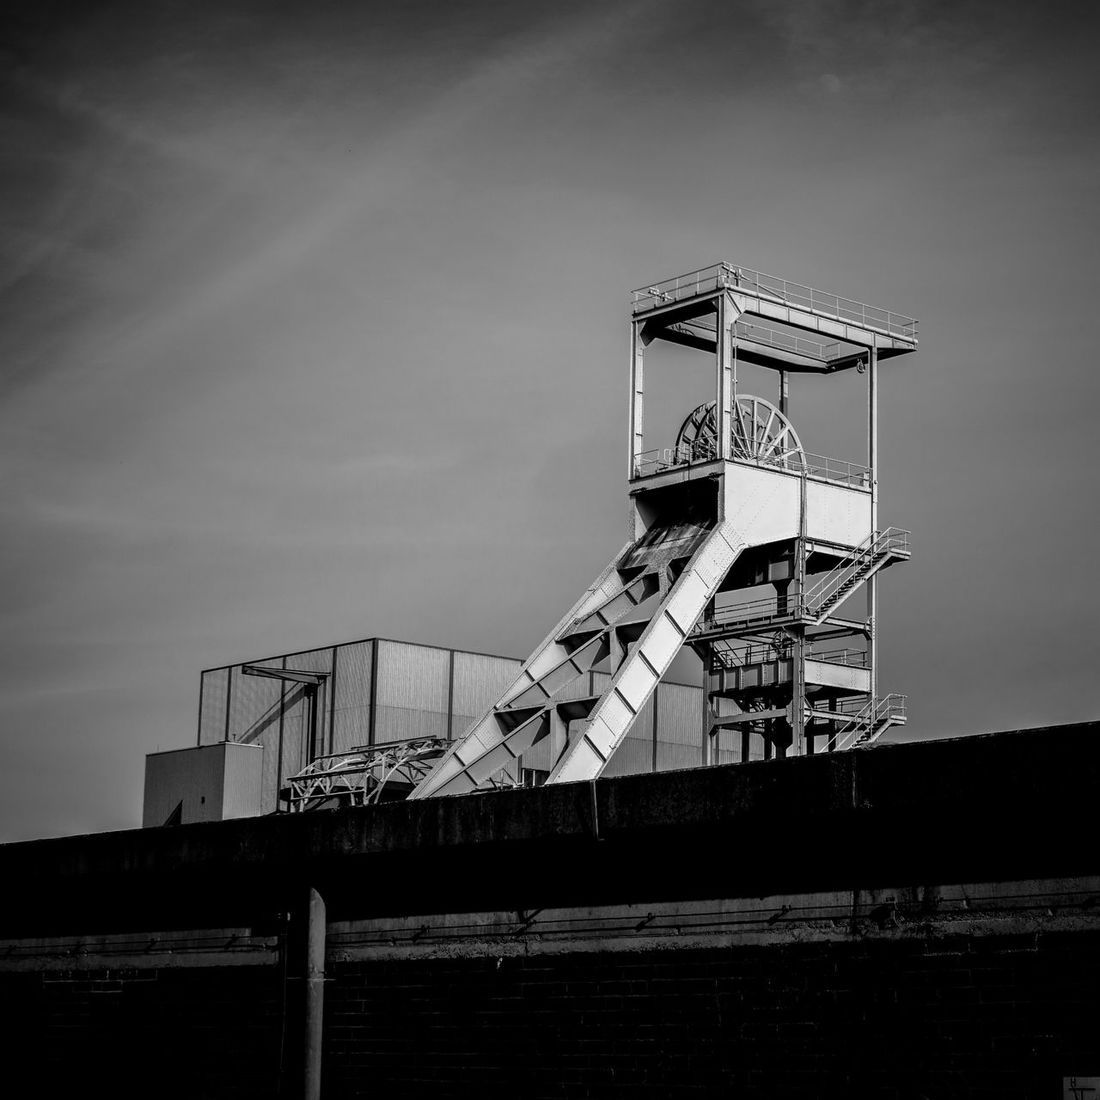 Winding Tower Headgear Architecture Built Structure Coal Mine Coal Mining Day Industrial Low Angle View No People Outdoors Shaft Tower Sky